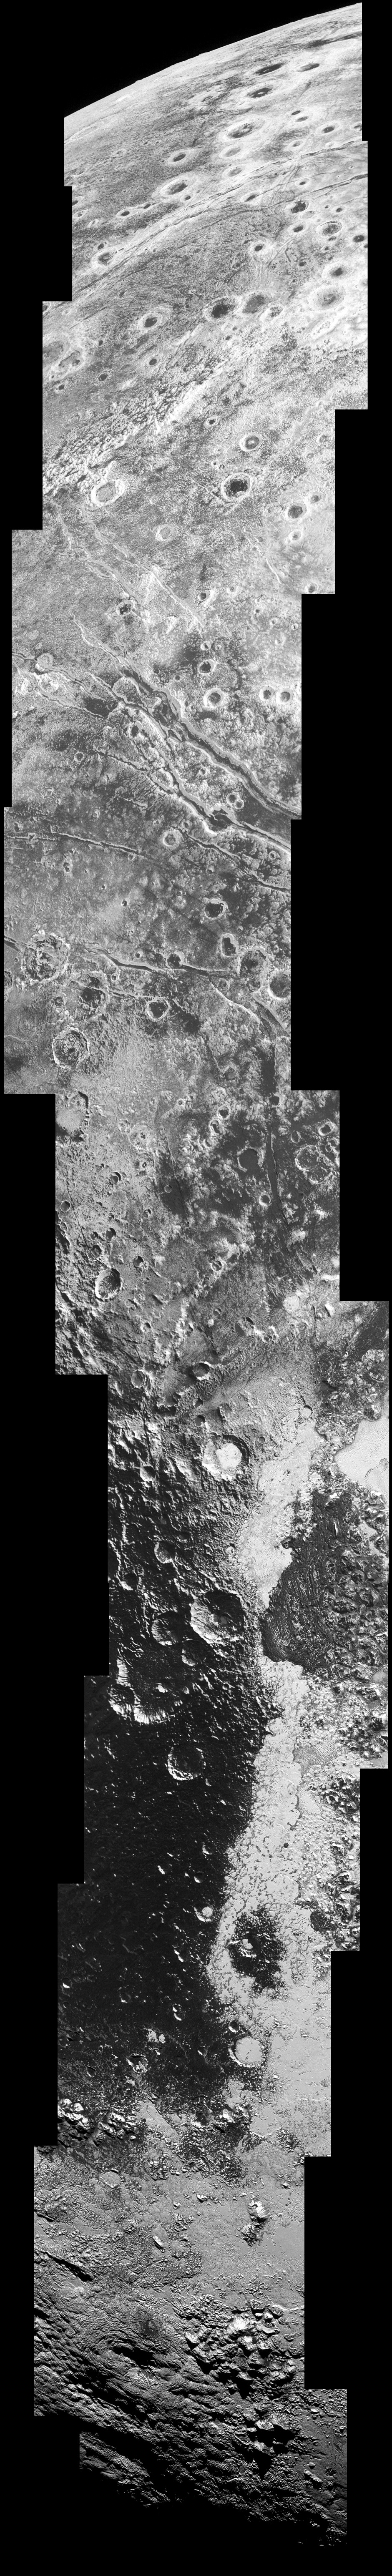 """This high-resolution swath of Pluto sweeps over the cratered plains at the west of the New Horizons' encounter hemisphere and across numerous prominent faults, skimming the eastern margin of the dark, forbidding region informally known as Cthulhu Regio, and finally passing over the mysterious, possibly cryovolcanic edifice Wright Mons, before reaching the terminator or day-night line. Among the many notable details shown are the overlapping and infilling relationships between units of the relatively smooth, bright volatile ices from Sputnik Planum (at the edge of the mosaic) and the dark edge or """"shore"""" of Cthulhu. The pictures in this mosaic were taken by the Long Range Reconnaissance Imager (LORRI) in """"ride-along"""" mode with the LEISA spectrometer, which accounts for the 'zigzag' or step pattern. Taken shortly before New Horizons' 14July closest approach to Pluto, details as small as 500 yards (500 metres) can be seen. Click on the image and zoom in for optimal viewing. Image credit: NASA/Johns Hopkins University Applied Physics Laboratory/Southwest Research Institute."""